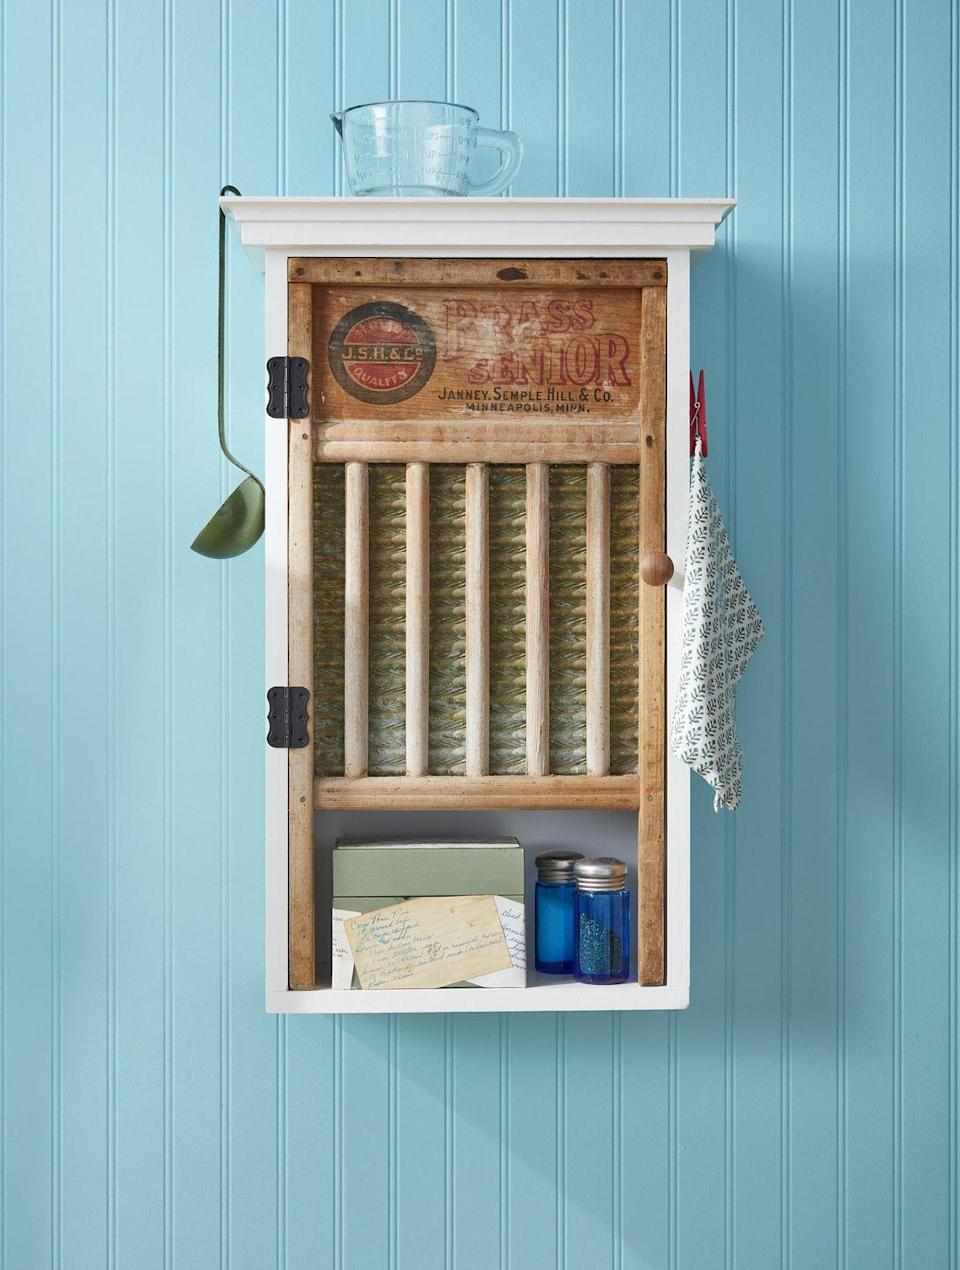 """<p>Store your staples in style in a custom made Washboard Cabinet.<br><strong><br>To make</strong>: Retrofit an existing cabinet (or build a new one) to fit a vintage washboard. Hang on the wall and use as a pint-sized pantry or medicine cabinet.<br><br><a class=""""link rapid-noclick-resp"""" href=""""https://go.redirectingat.com?id=74968X1596630&url=https%3A%2F%2Fwww.etsy.com%2Fsearch%3Fq%3Dwashboard&sref=https%3A%2F%2Fwww.countryliving.com%2Fdiy-crafts%2Fg23489557%2Fwinter-crafts%2F"""" rel=""""nofollow noopener"""" target=""""_blank"""" data-ylk=""""slk:SHOP WASHBOARDS"""">SHOP WASHBOARDS</a></p>"""